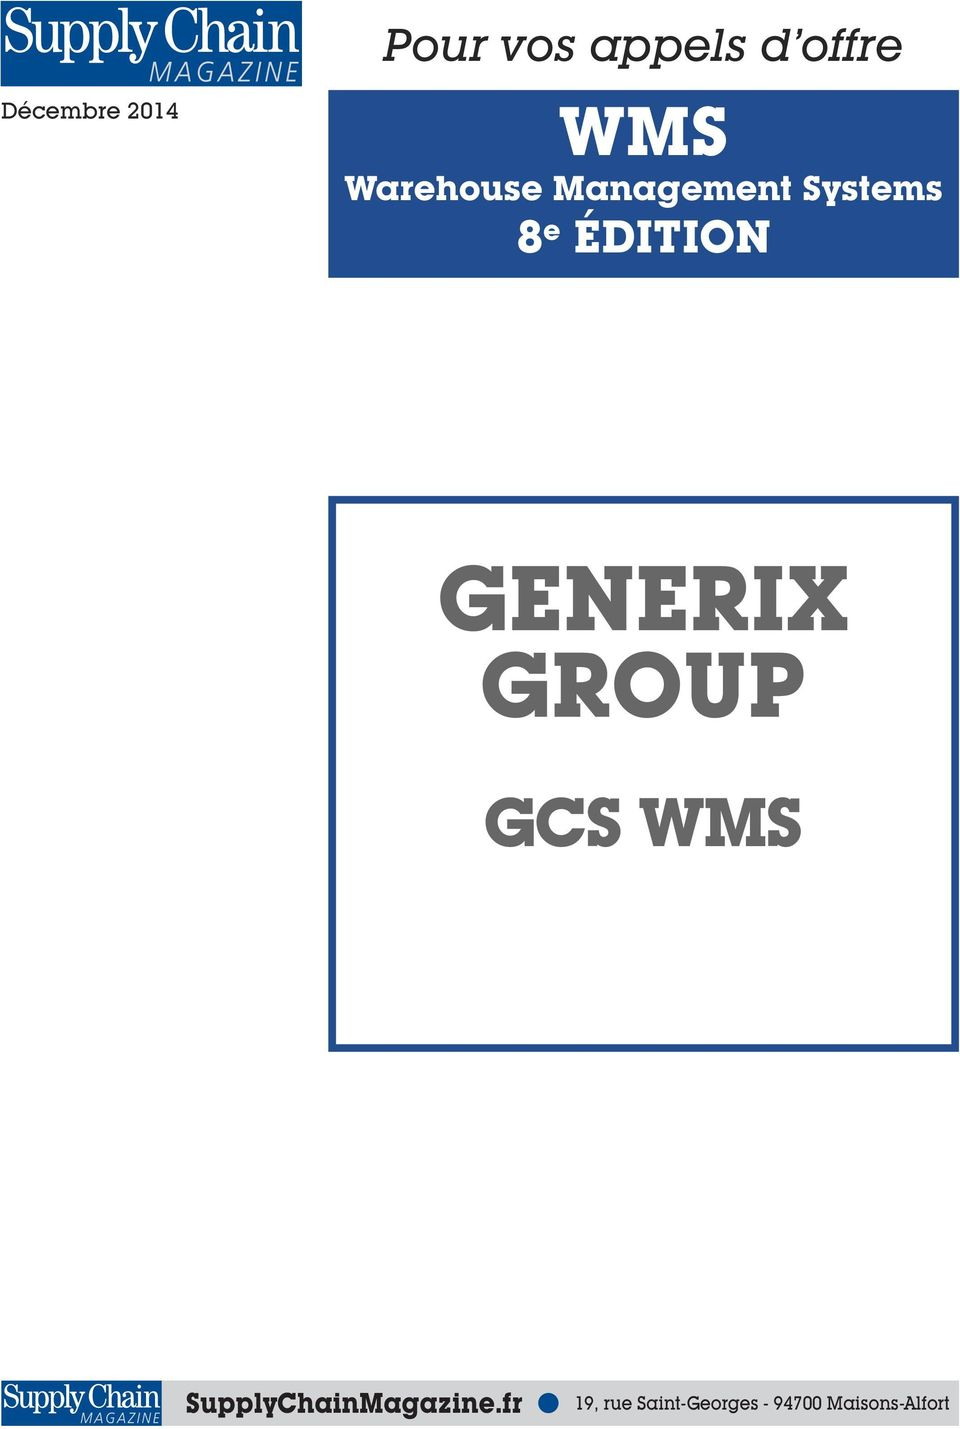 GENERIX GROUP GCS WMS SupplyChainMagazine.